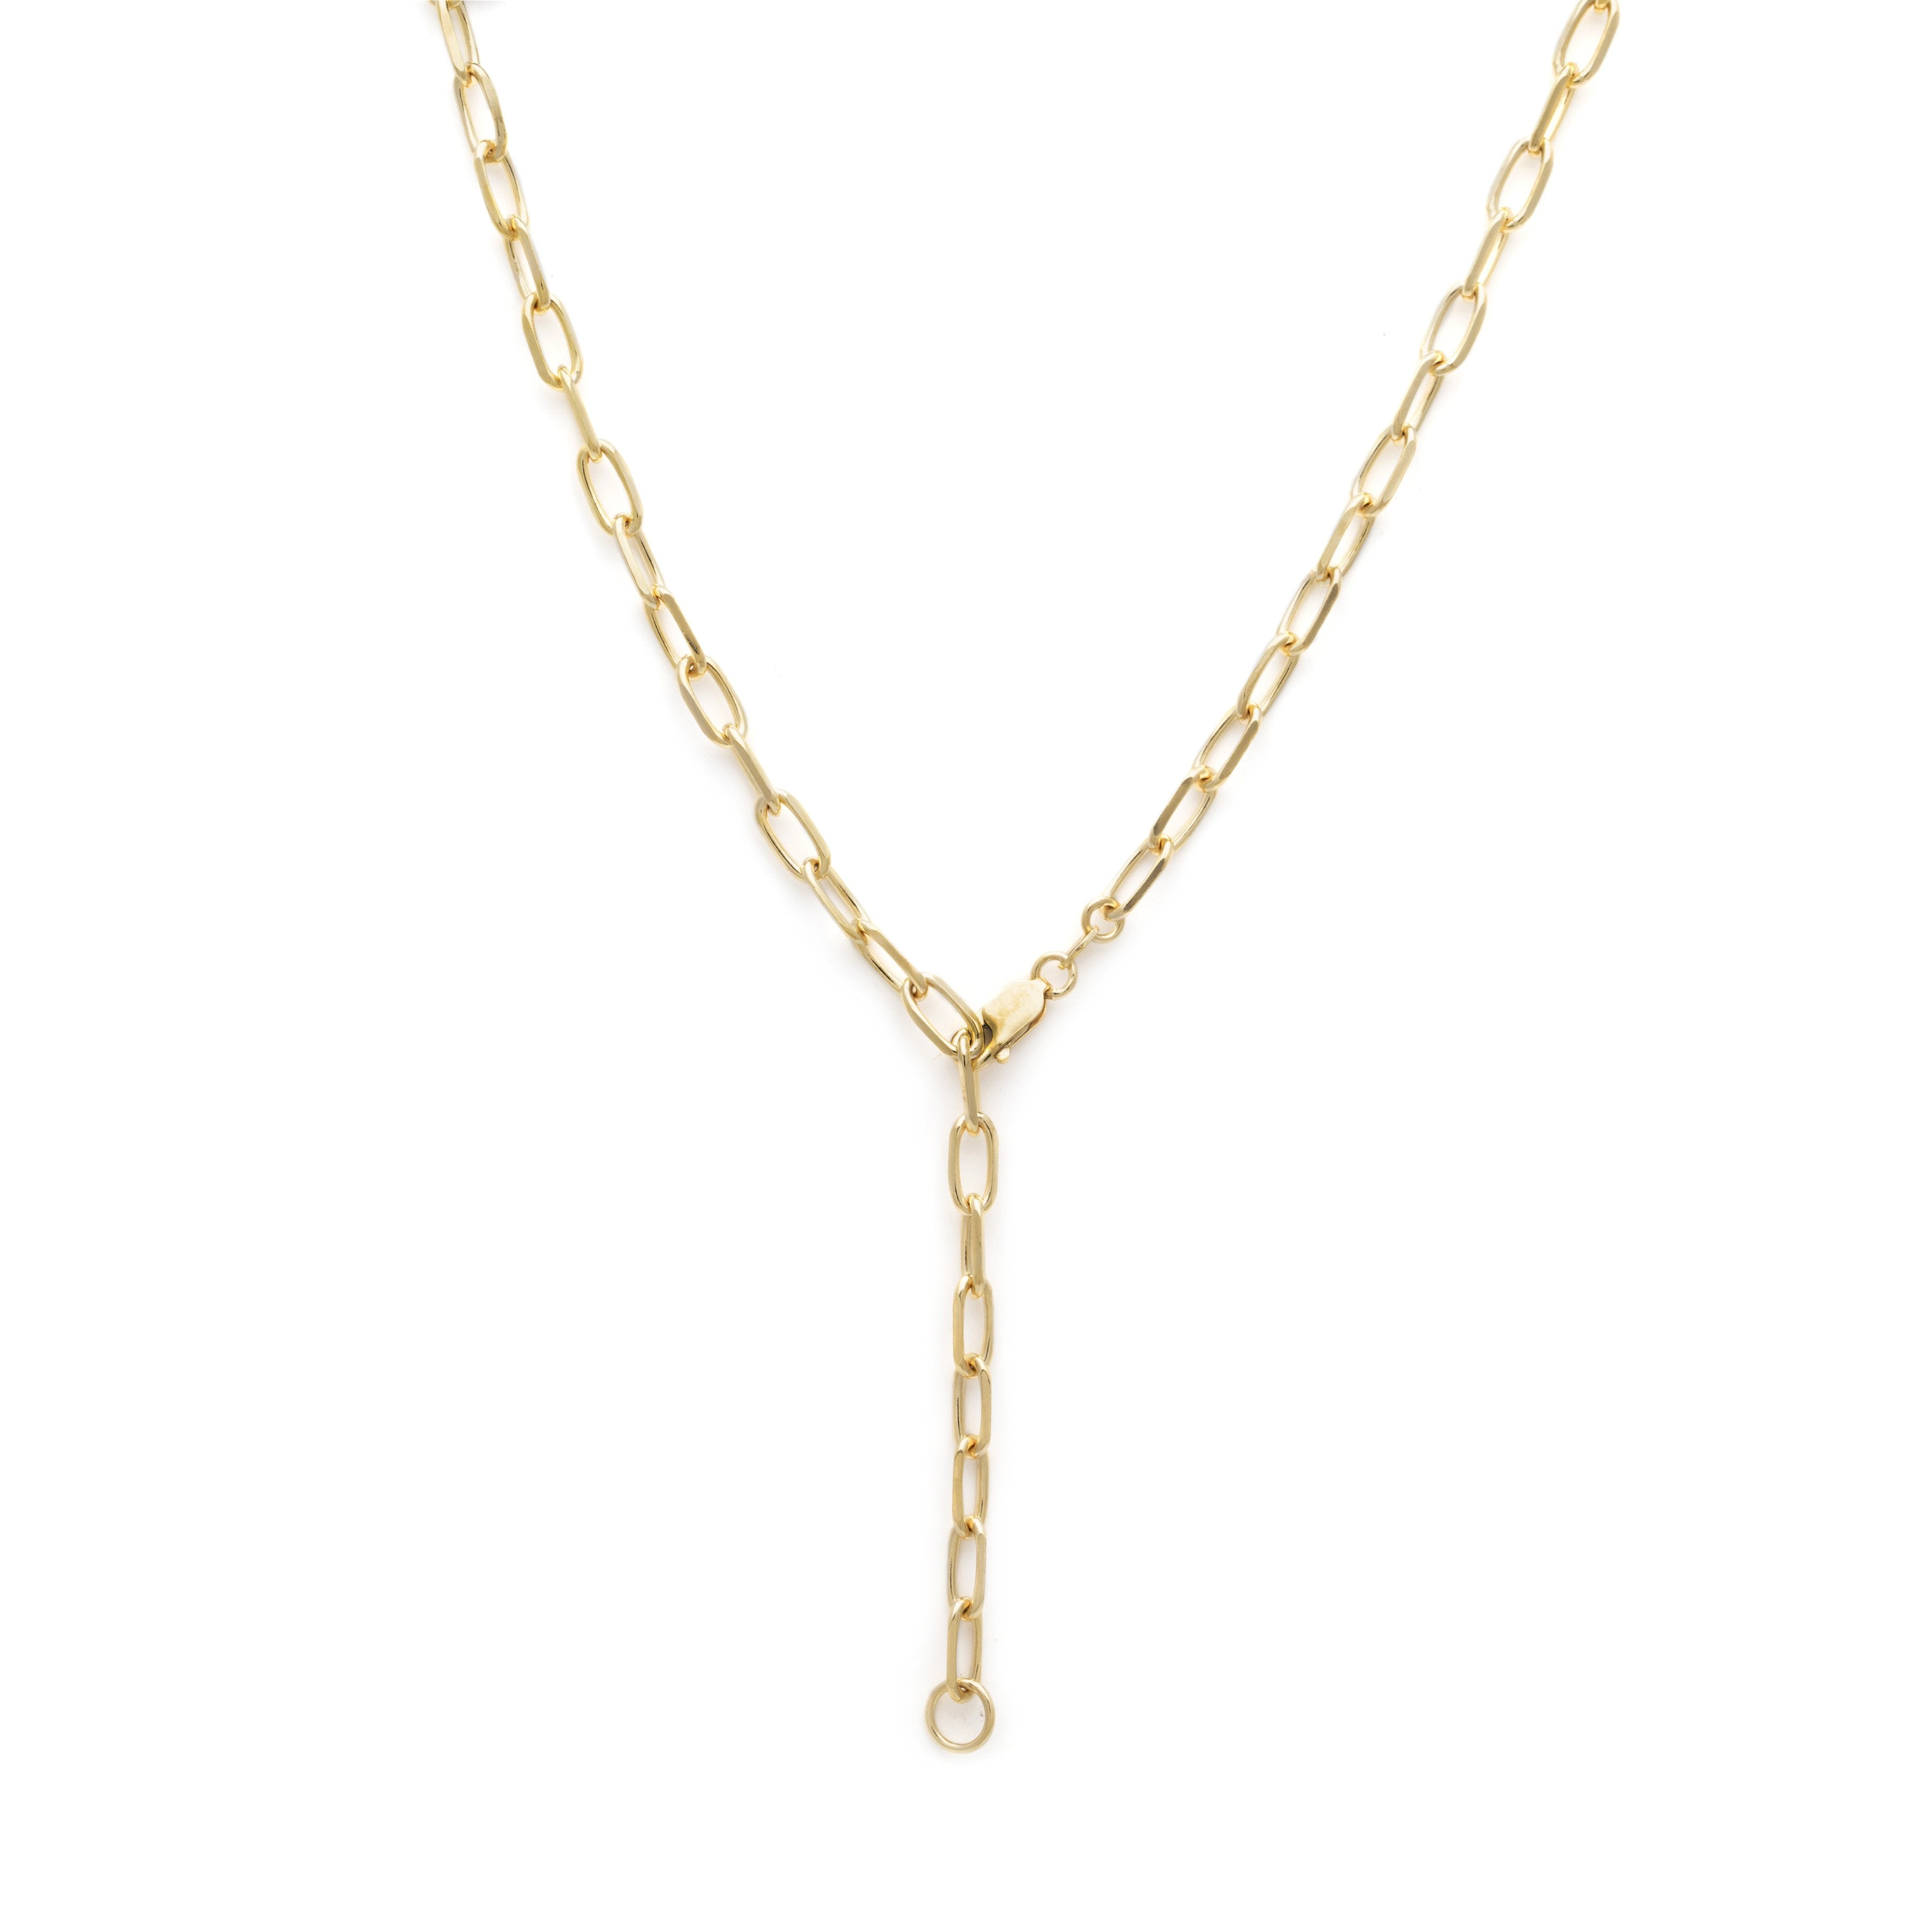 2 in 1 Thick Staple Chain - Gold Vermeil